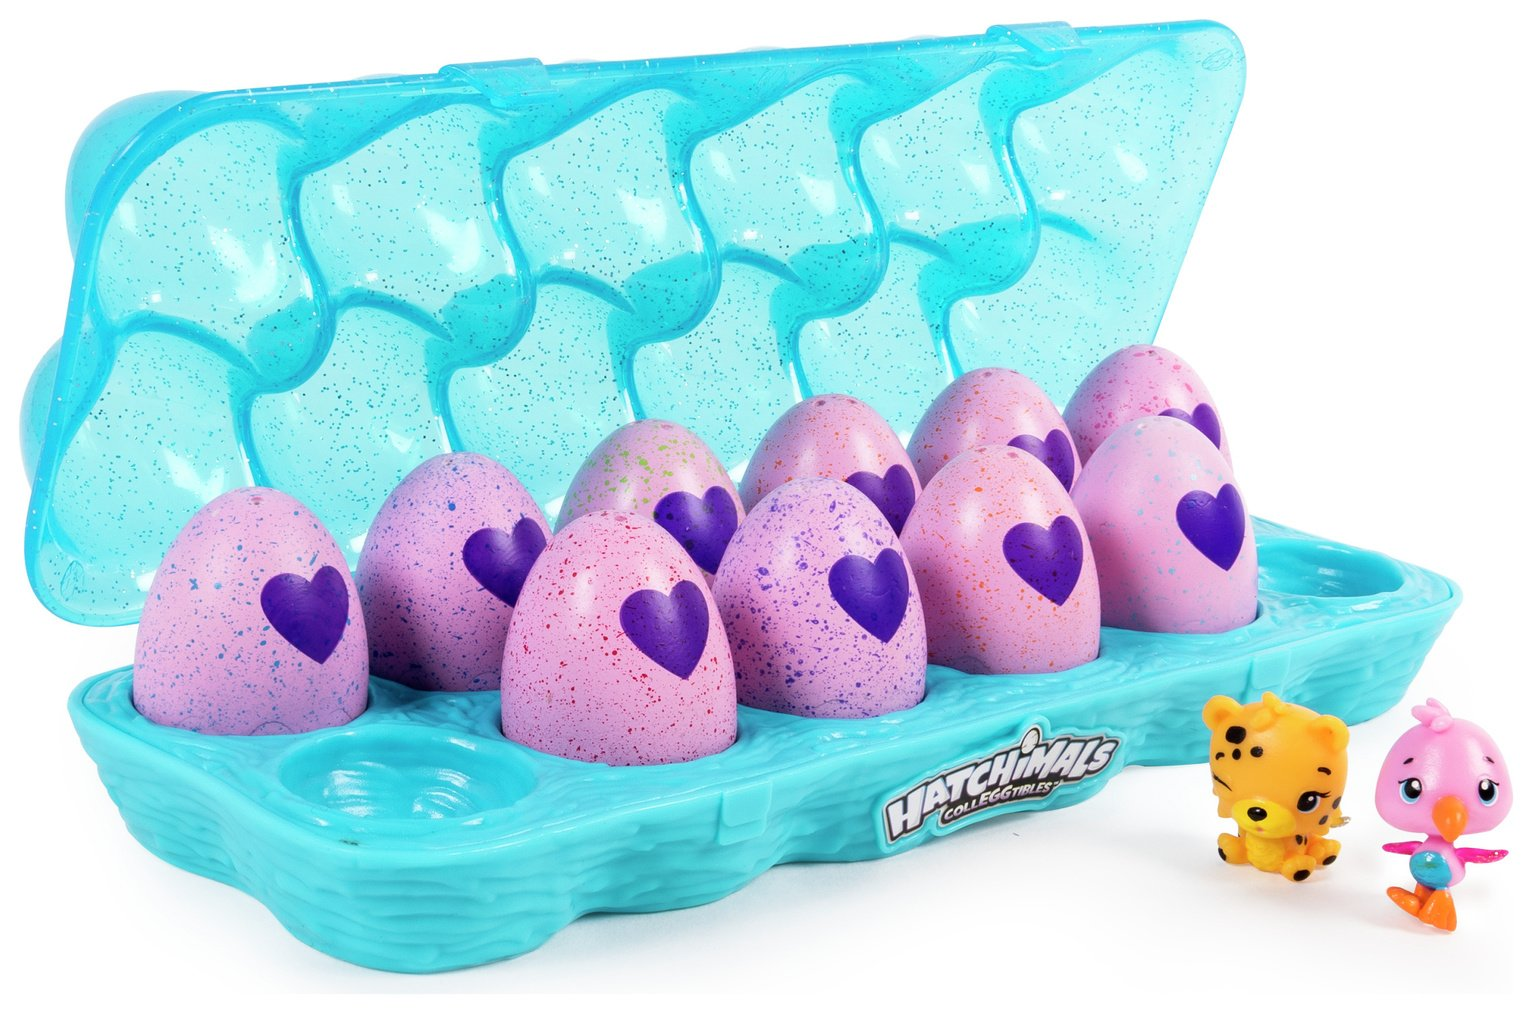 Image of Hatchimals CollEGGtibles Egg Carton - 12 Pack